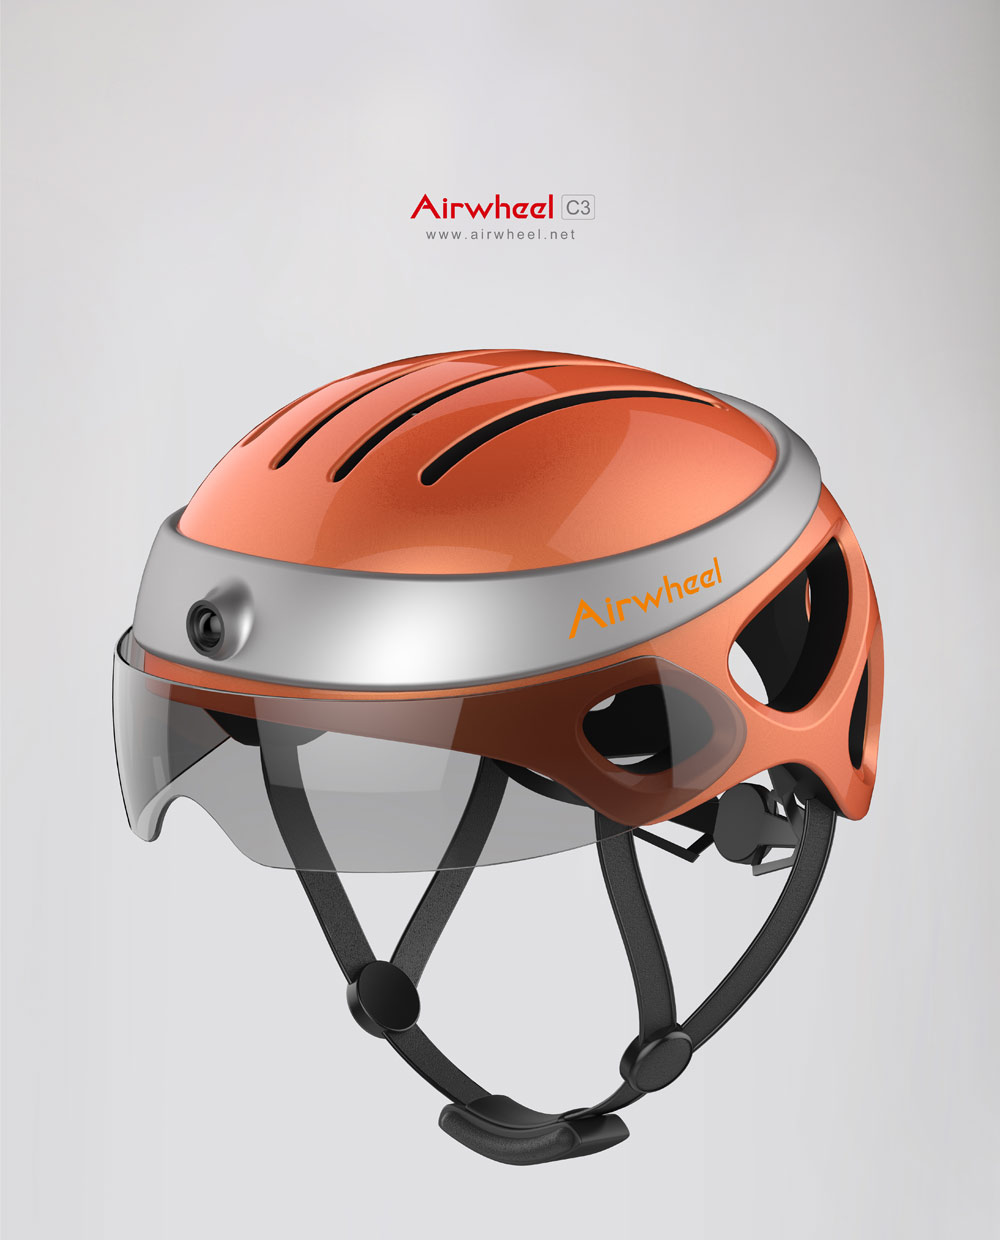 Airwheel C3 smart helmet